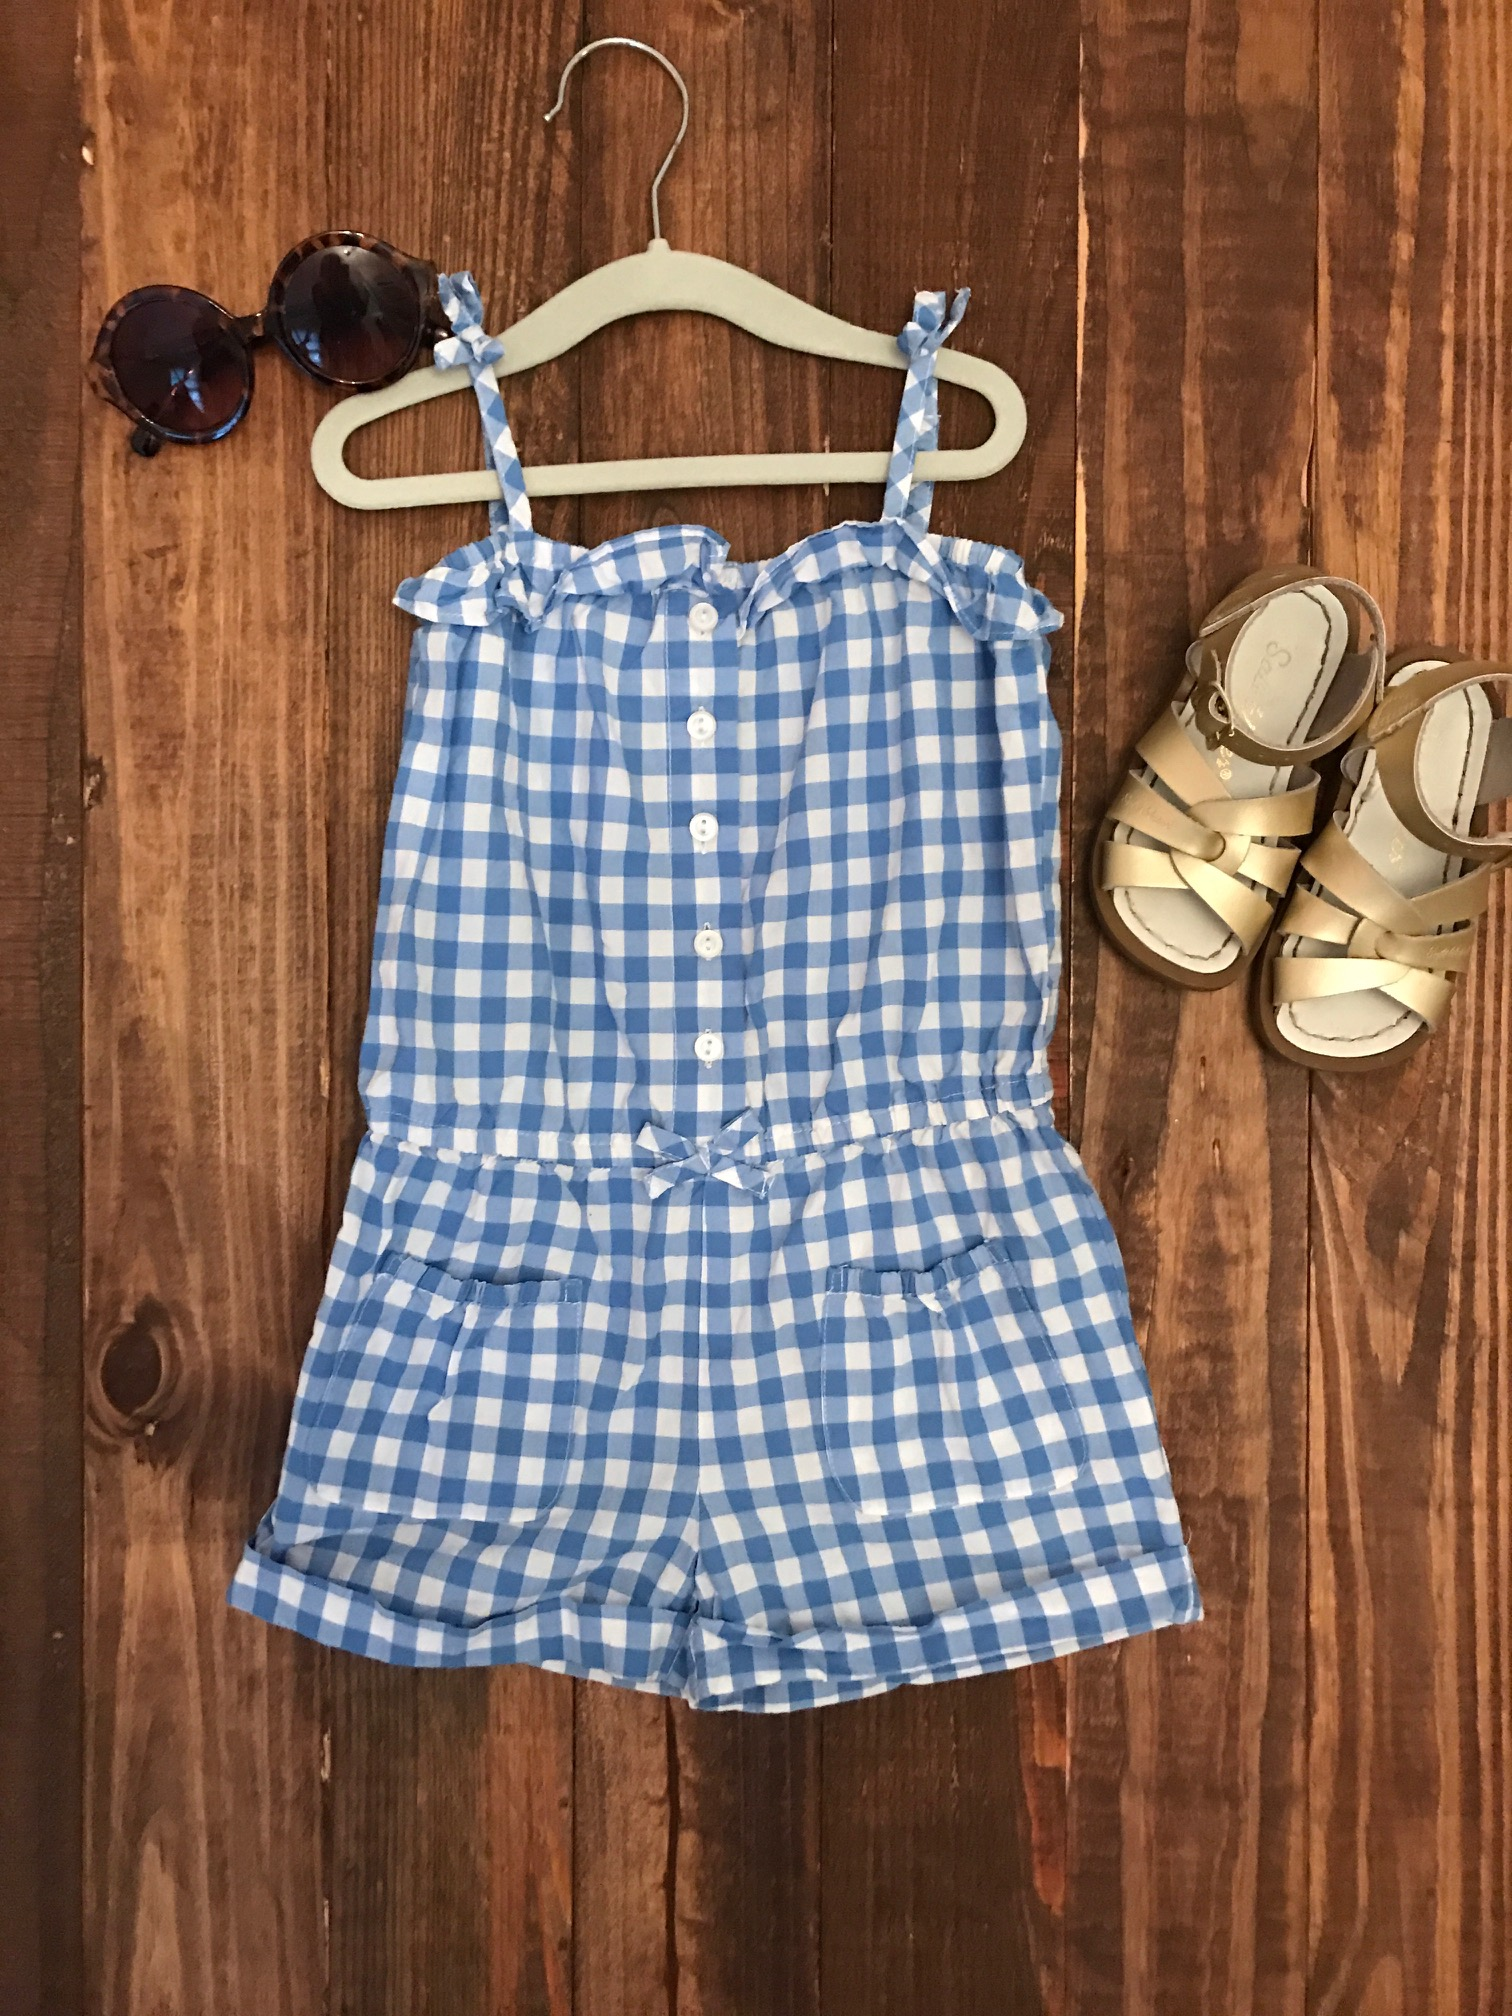 Baby Gap romper, Salt Water Sandals, Crewcuts sunglasses